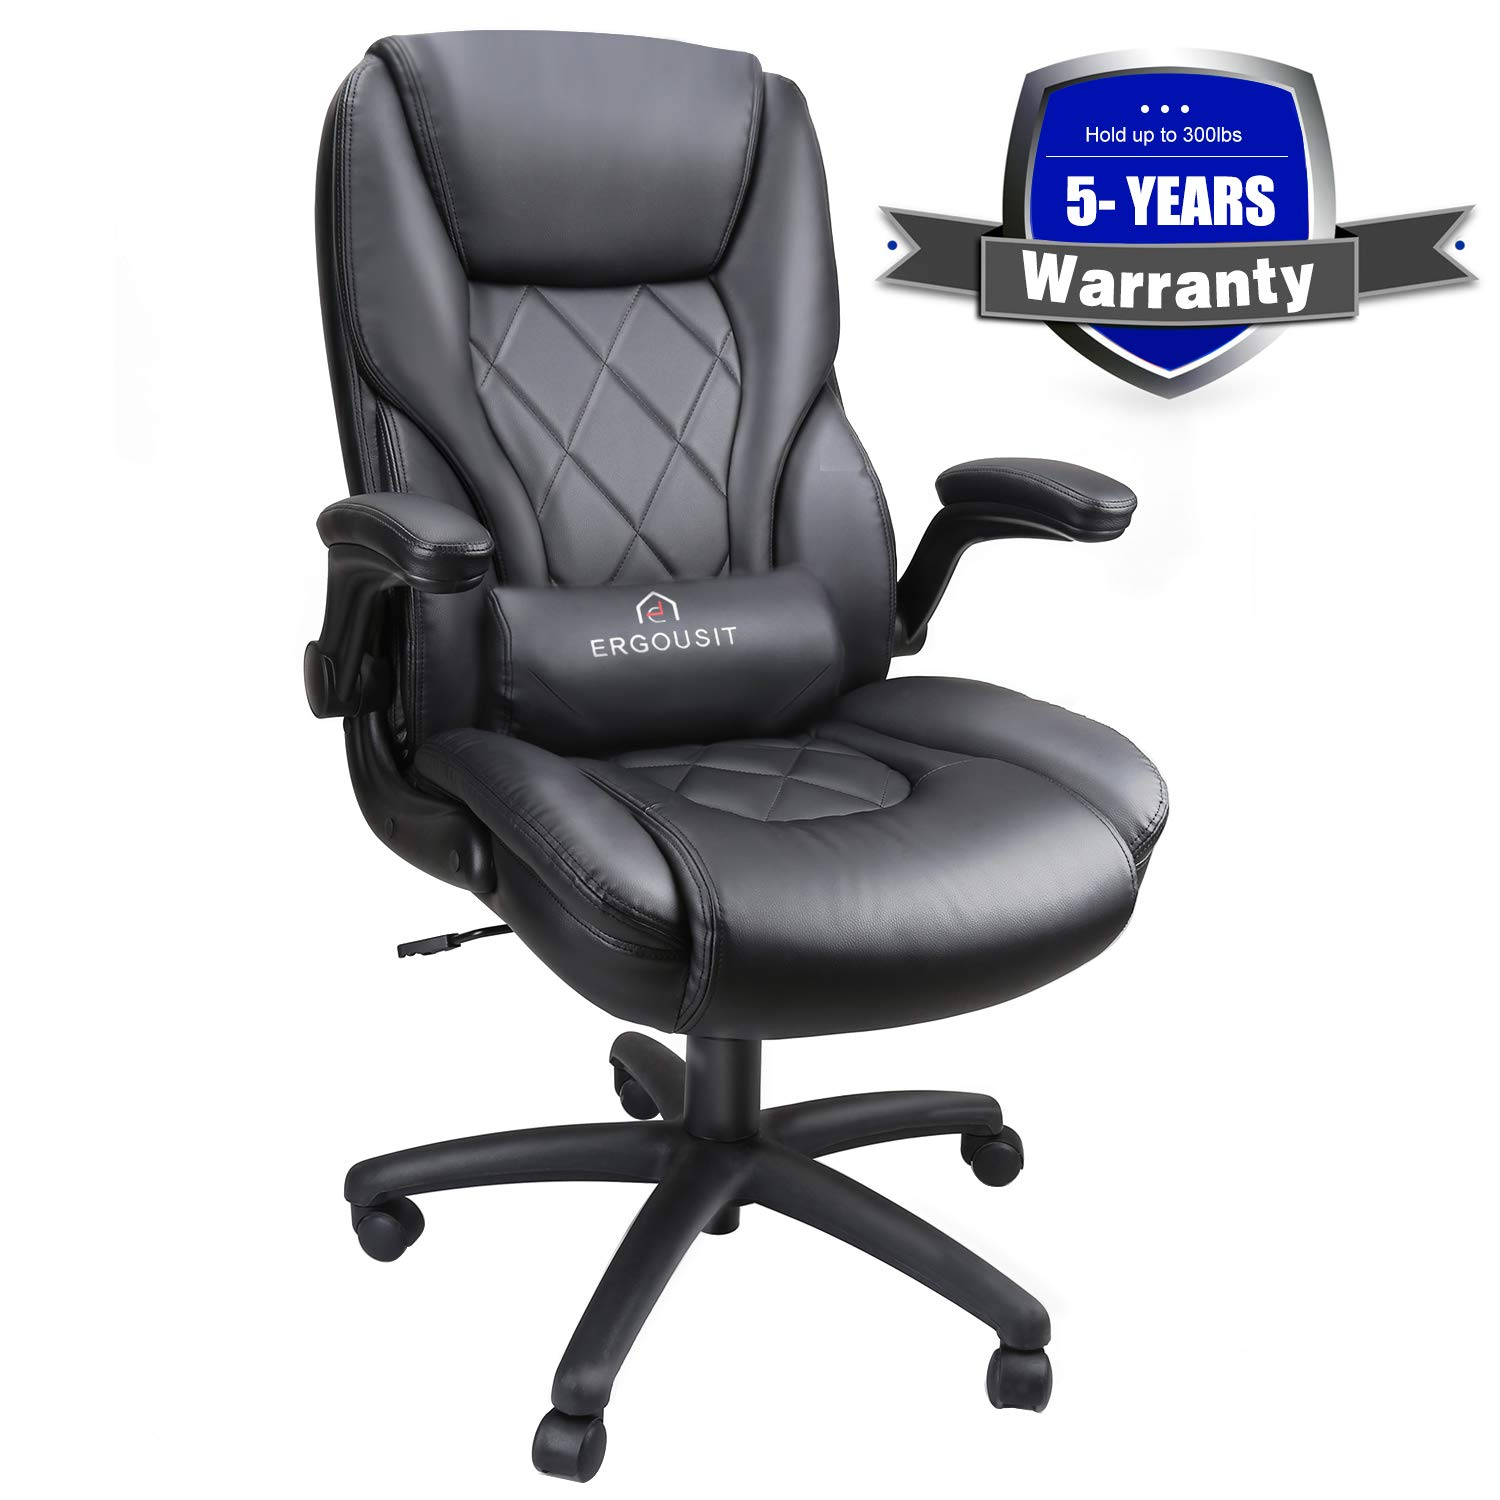 Executive Office Chairs - High Back Racing Style Task Chair - Adjustable Computer Desk Chairs with Lumbar Support, Leather Black for Office Room Decor by Ergousit (Image #1)